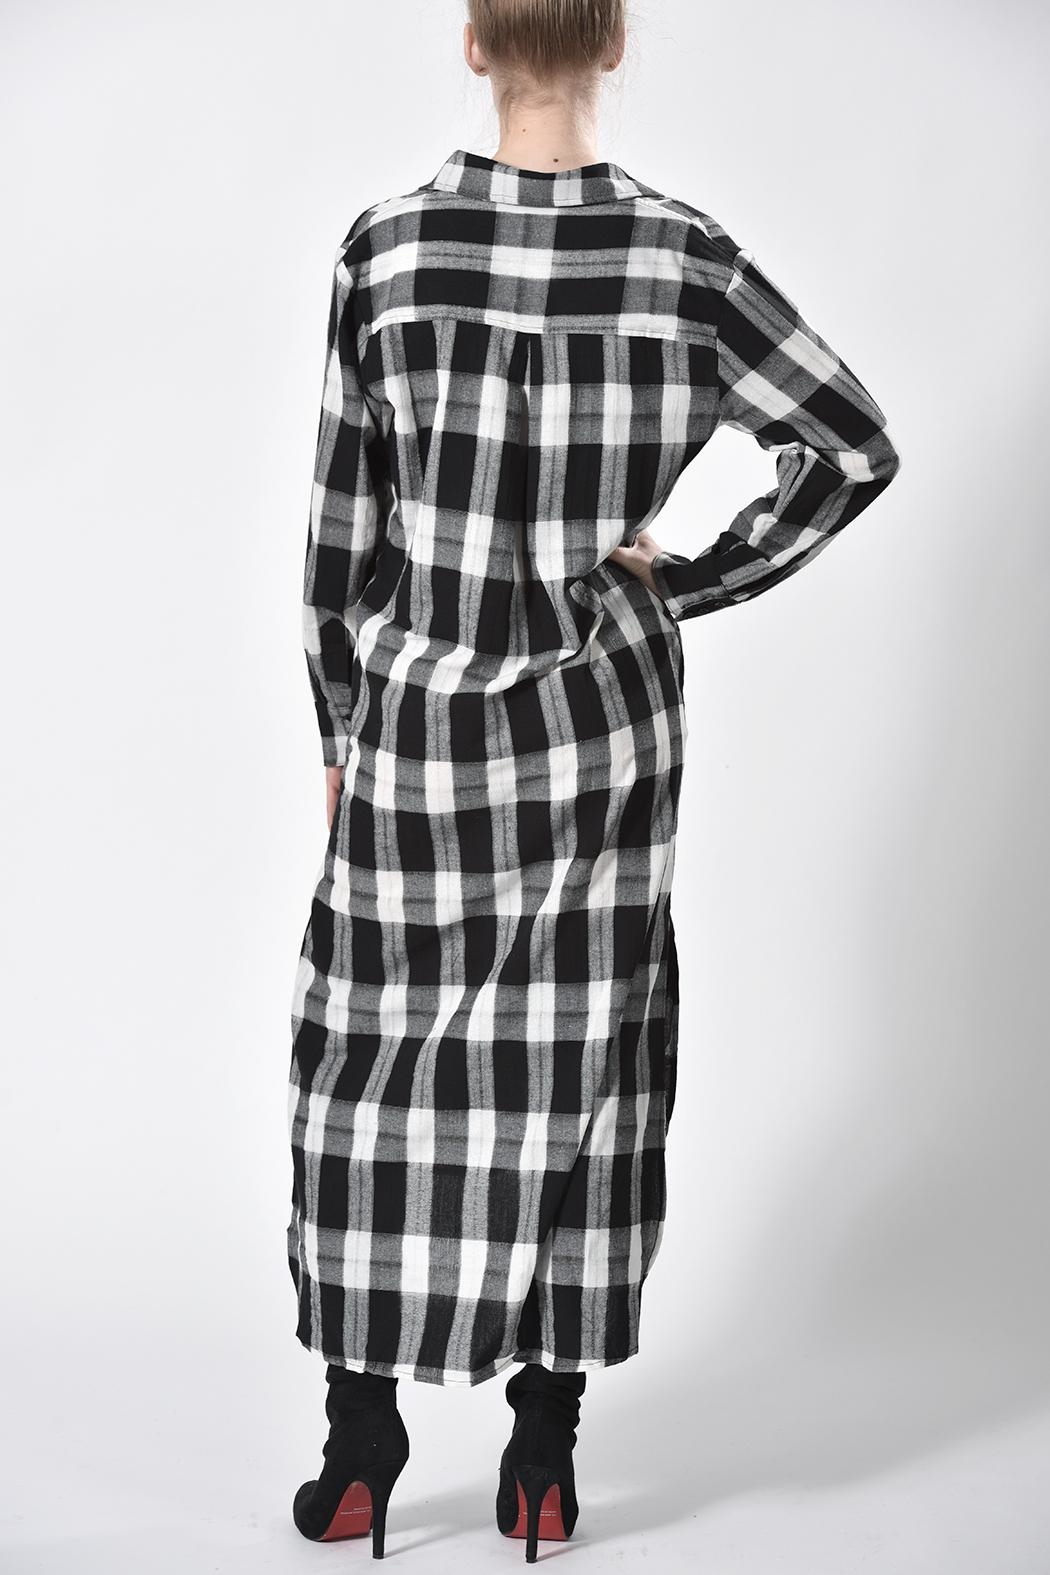 jane plus one Checkered Dress - Side Cropped Image